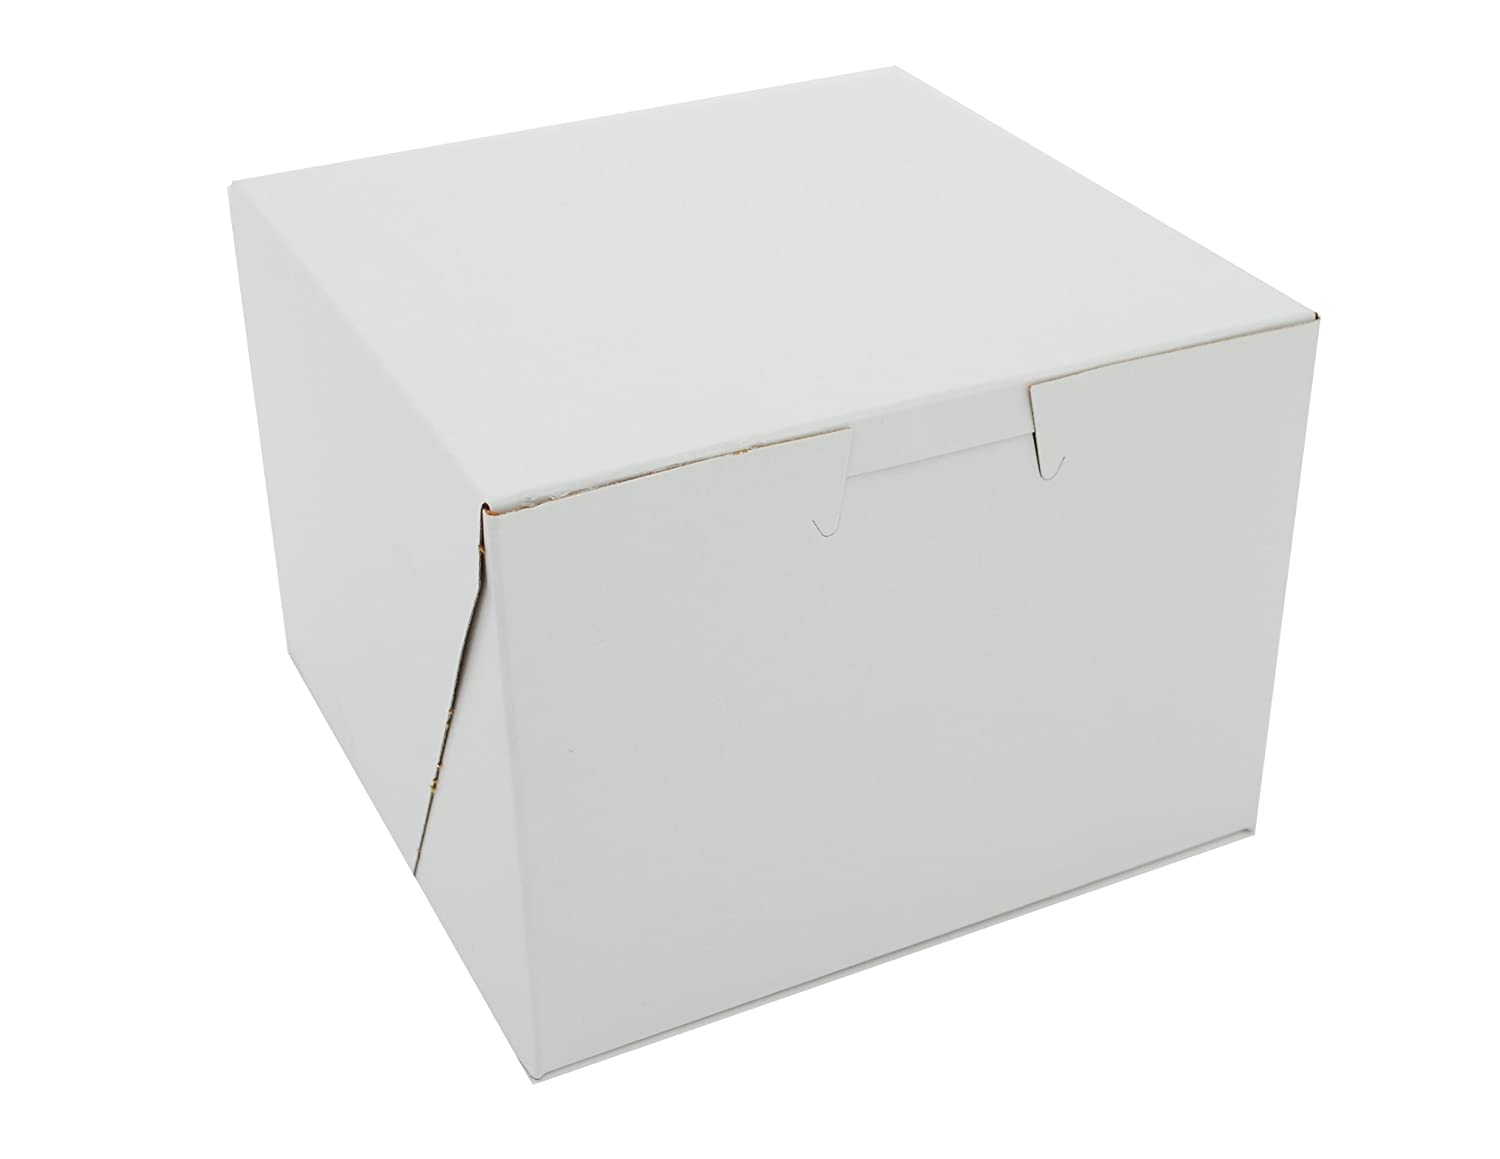 Southern Champion Tray 0900 Premium Clay Coated Kraft Paperboard White Non-Window Lock Corner Bakery Box, 5-1/2 Length x 4 Width x 3 Height (Case of 250)